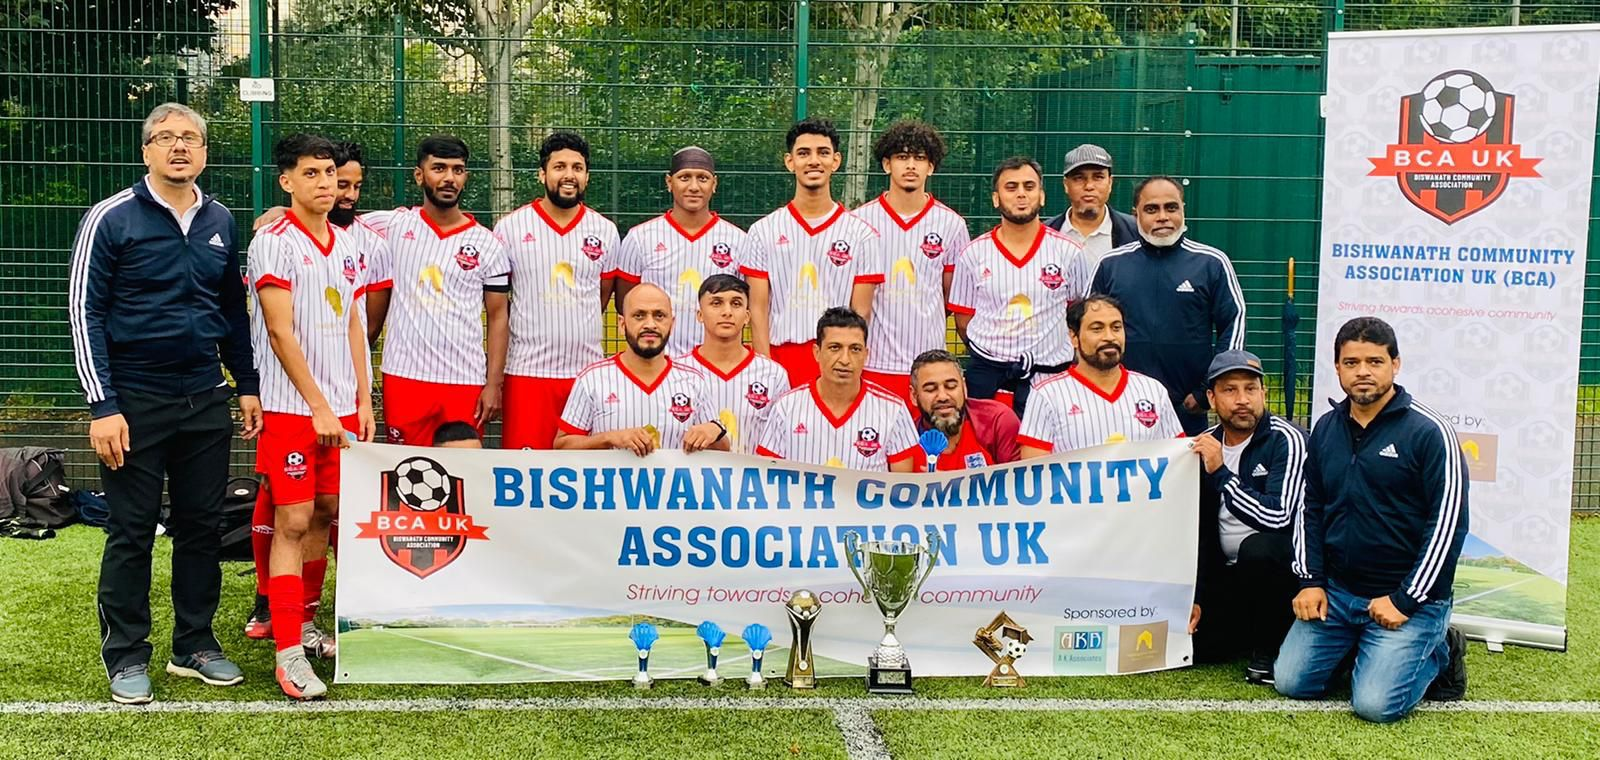 Bishwanath Community Association (BCA) storms to victory without losing a single game!